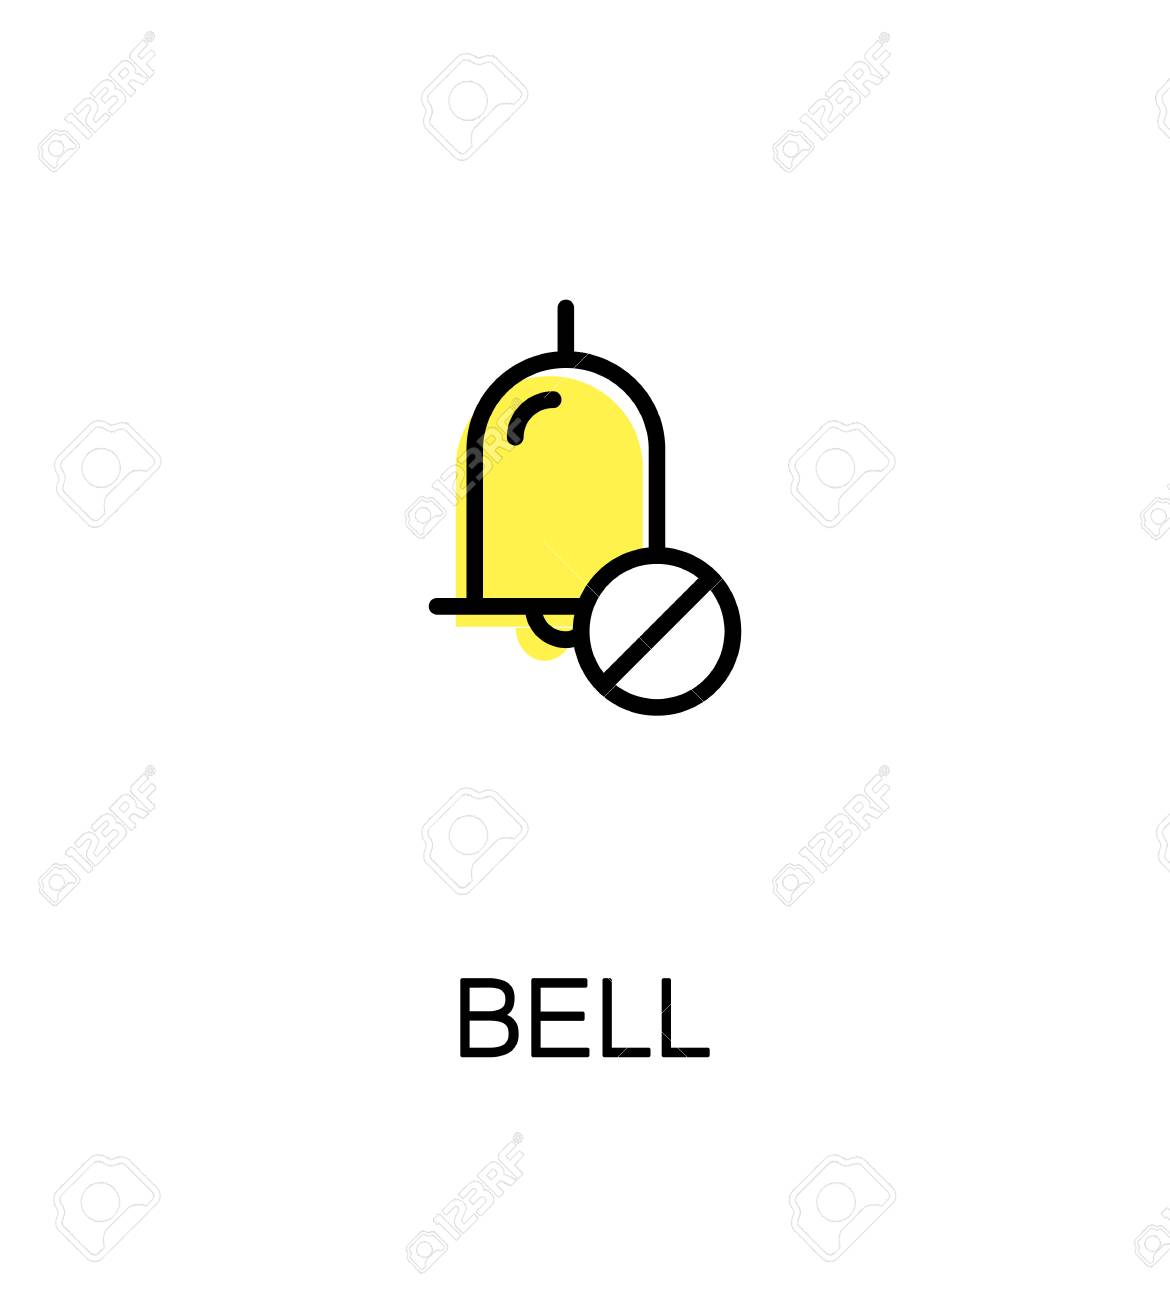 Symbol for bell dolgular charming symbol for bell photos electrical and wiring diagram biocorpaavc